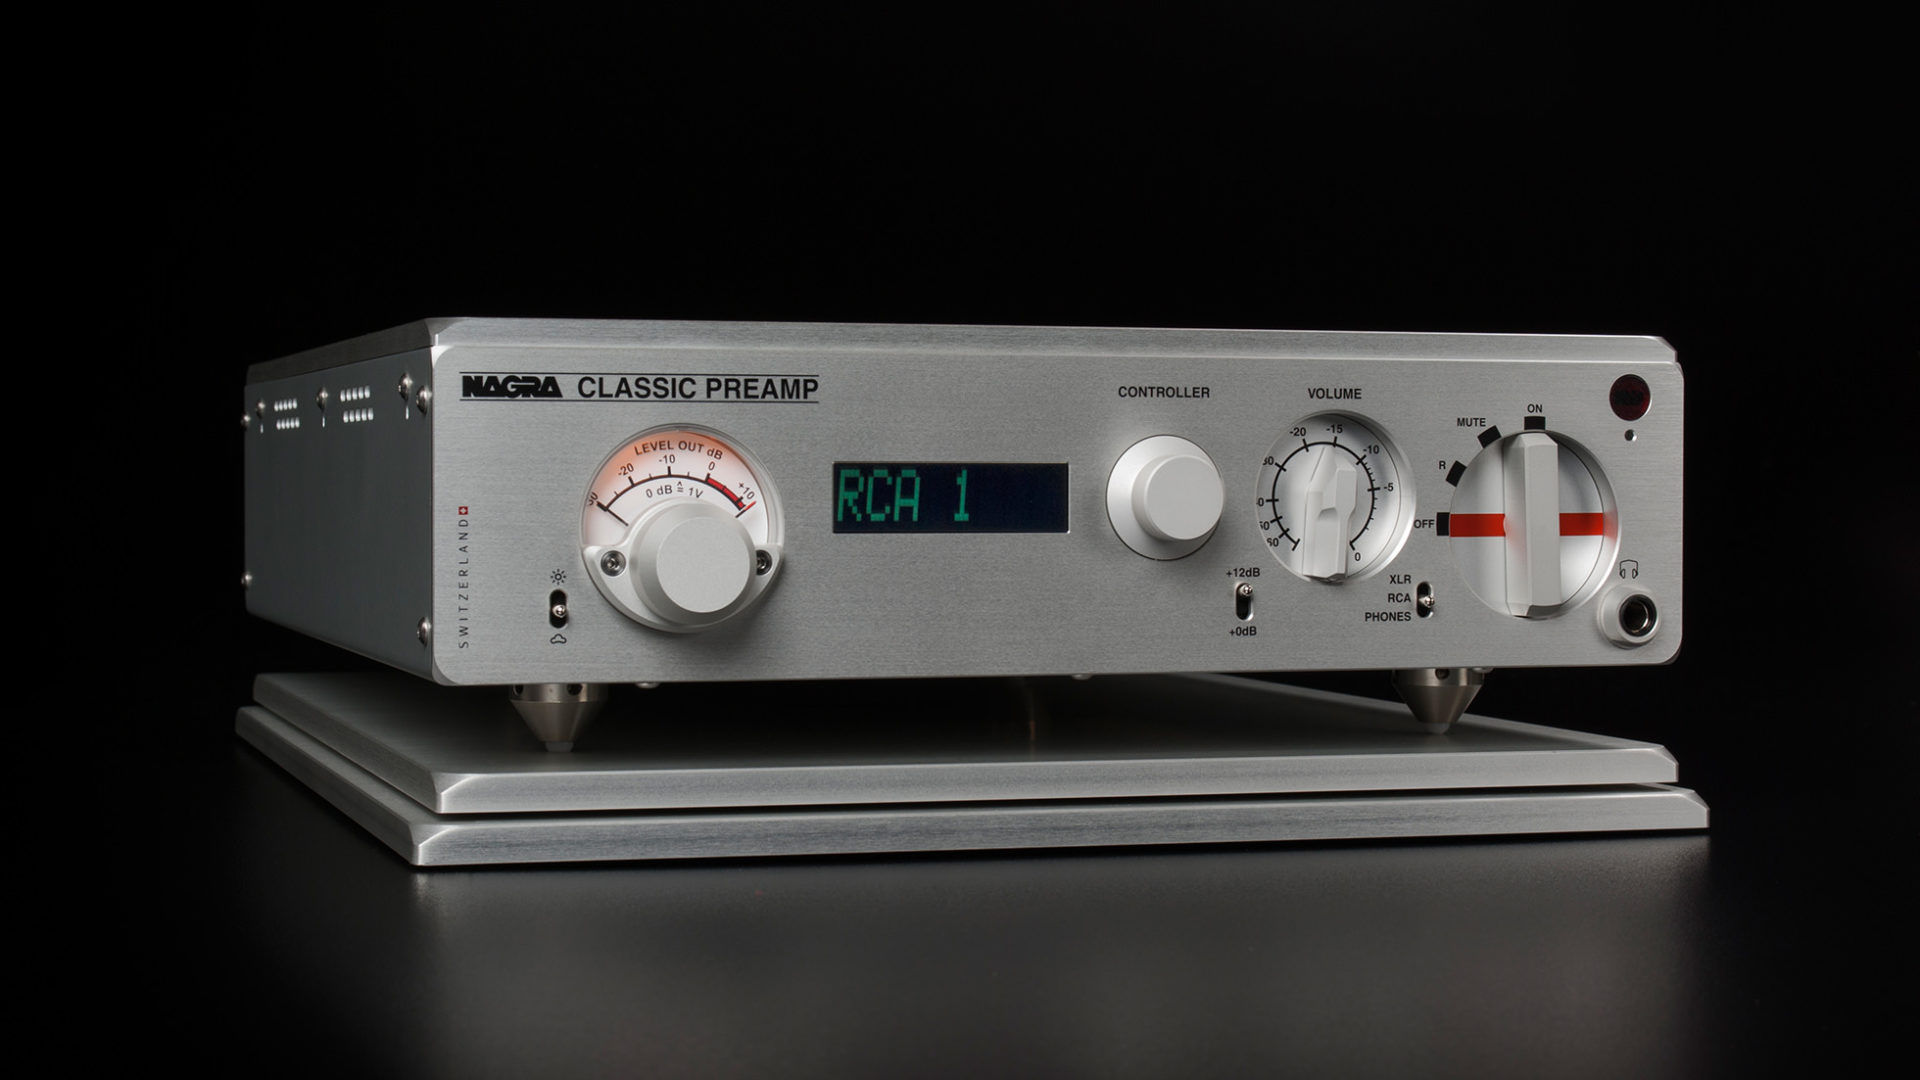 Nagra classic preamp modulo best high end preamplifier front vfs